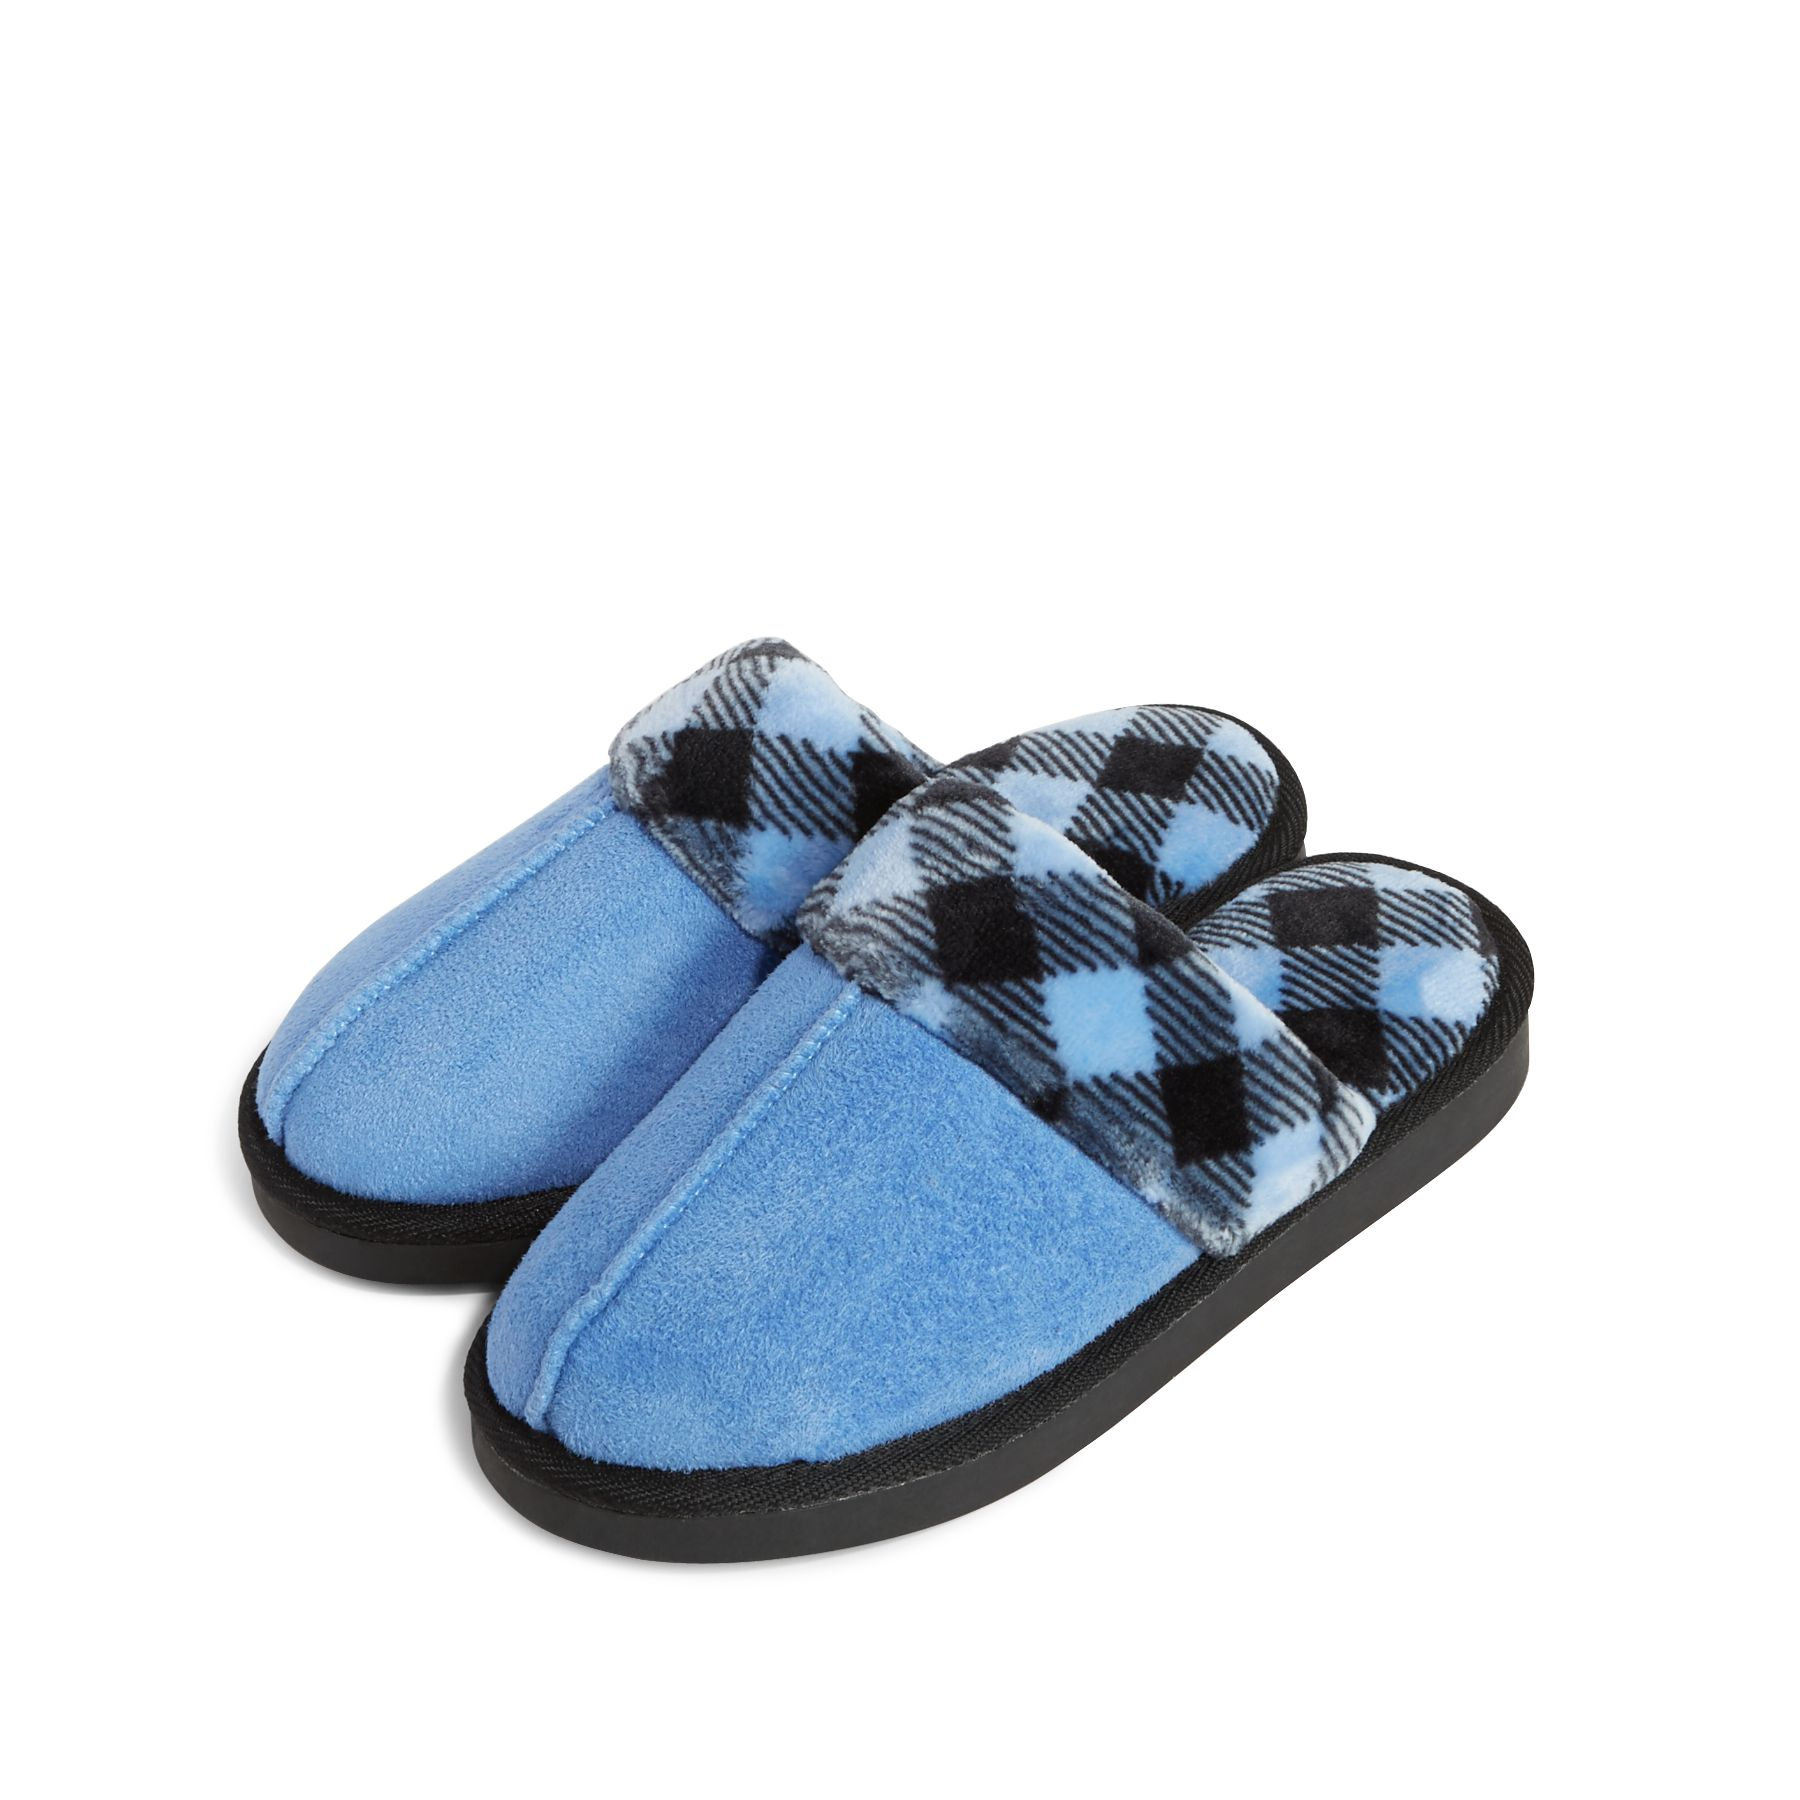 Find great deals on eBay for cozy slippers. Shop with confidence.